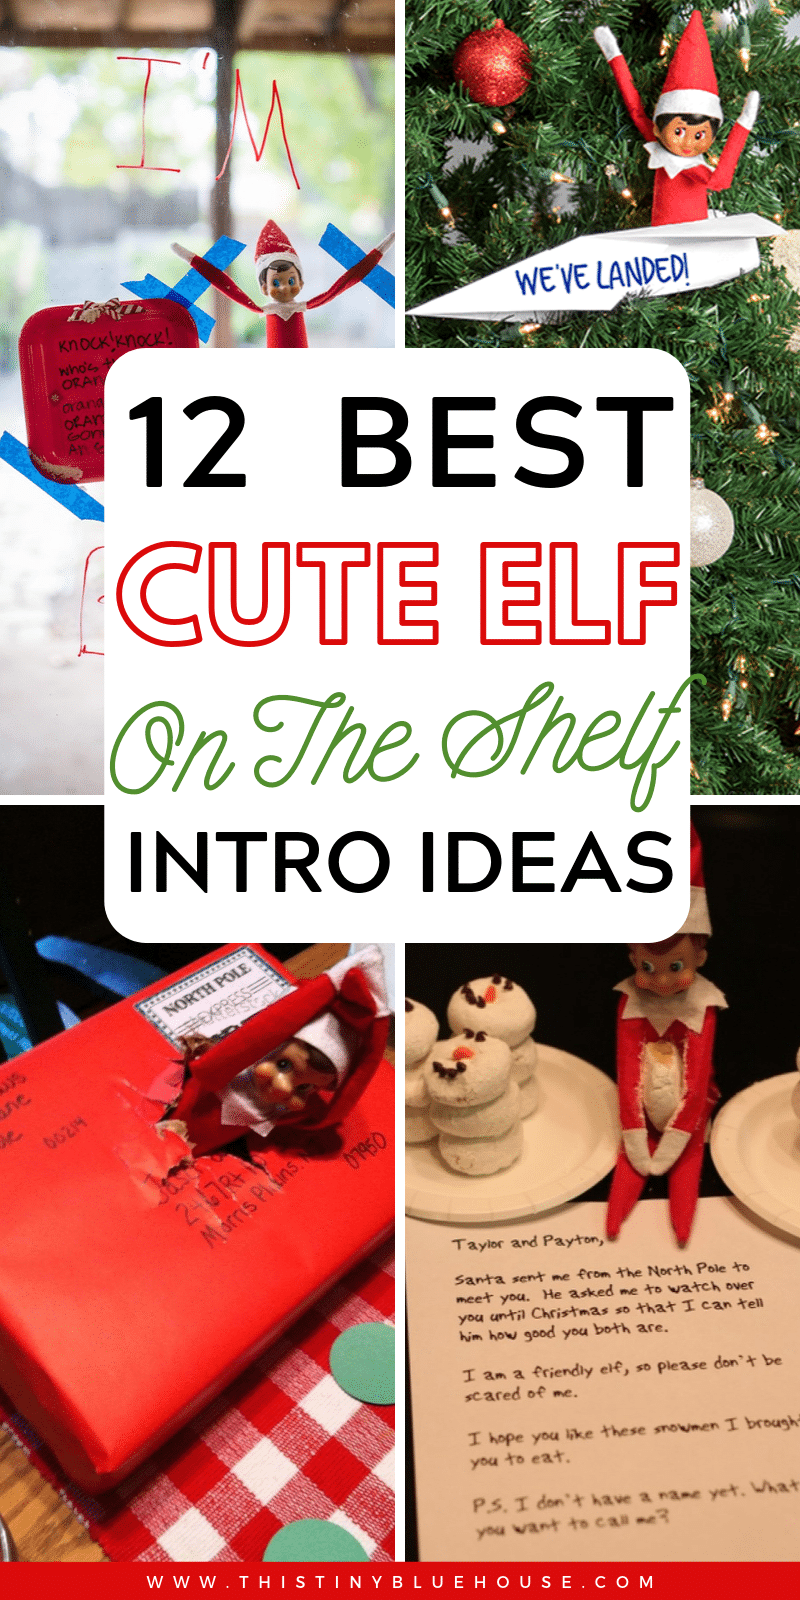 With Christmas right around the corner it's time to start thinking about dusting off your Elf on The Shelf. Make the arrival of your beloved Elf a blast with these adorable and easy elf on the shelf intros. #elfontheshelf #elfontheshelfideas #elfontheshelfarrival #elfontheshelfintros #elfontheshelfeasy #elfontheshelfhello #elfontheshelfintros